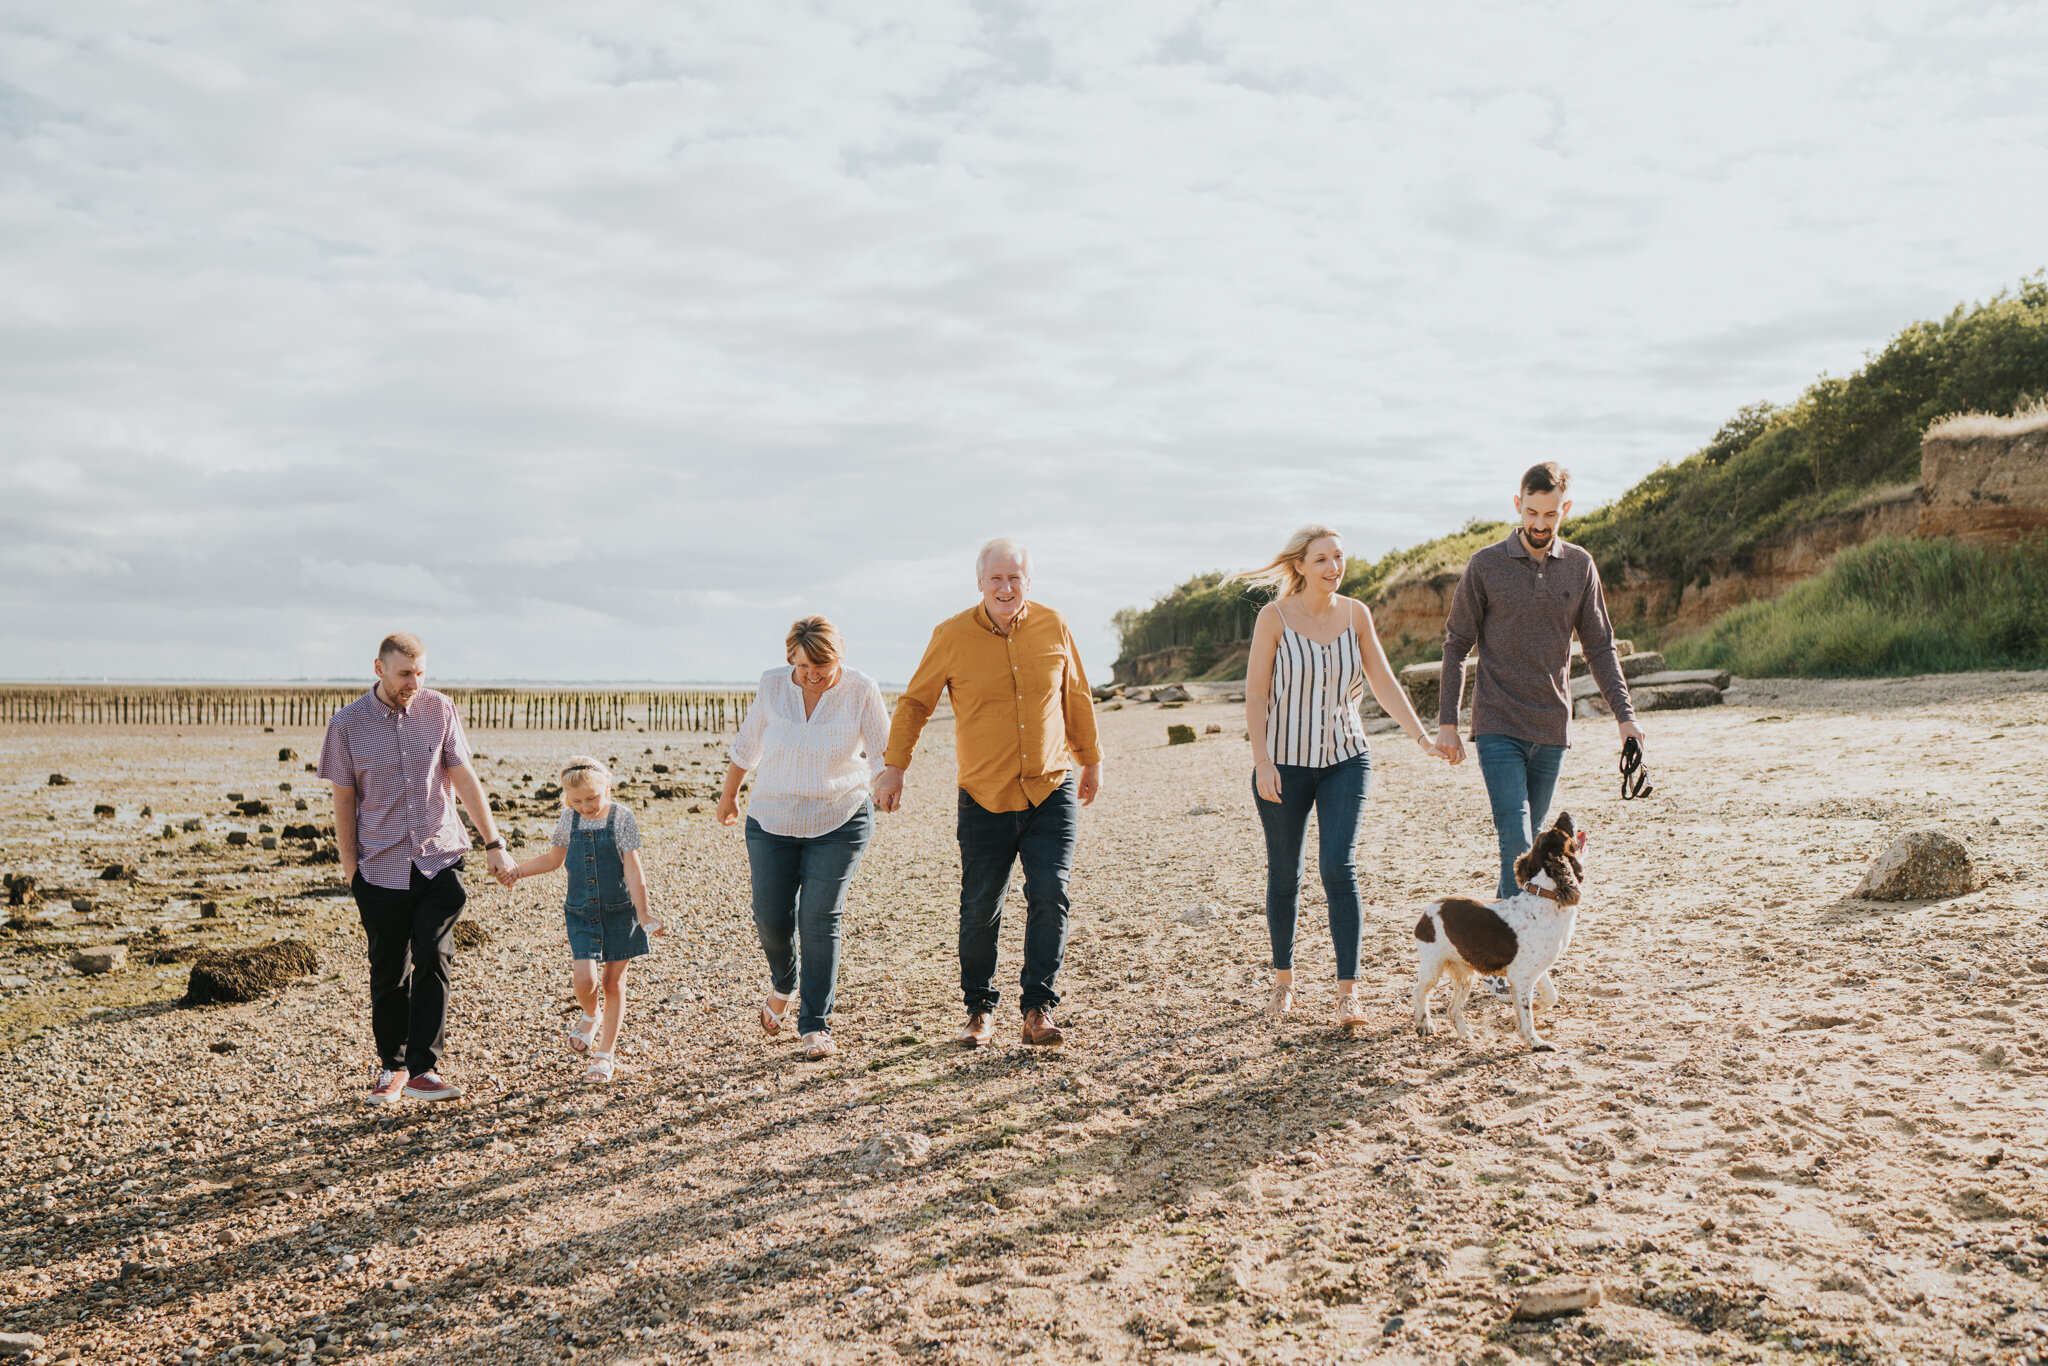 celebratory-beach-family-session-thomson-family-cudmore-grove-east-mersea-grace-elizabeth-colchester-essex-devon-suffolk-and-norfolk-alternative-wedding-and-family-photographer (49 of 53).jpg